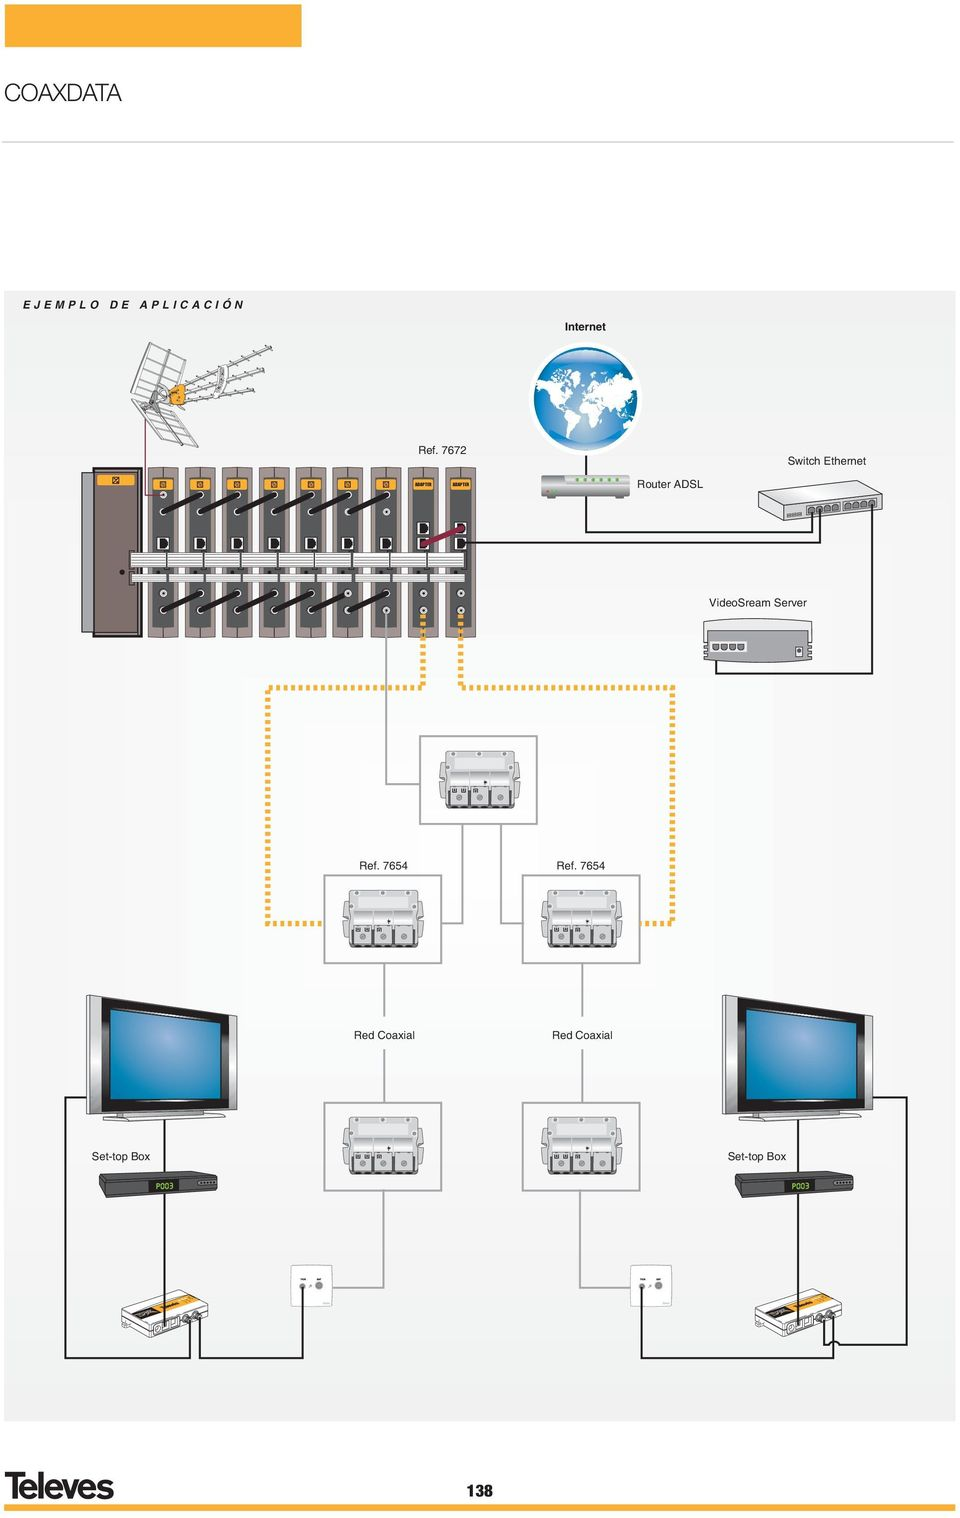 VideoSream Server Ref. 7654 Ref.